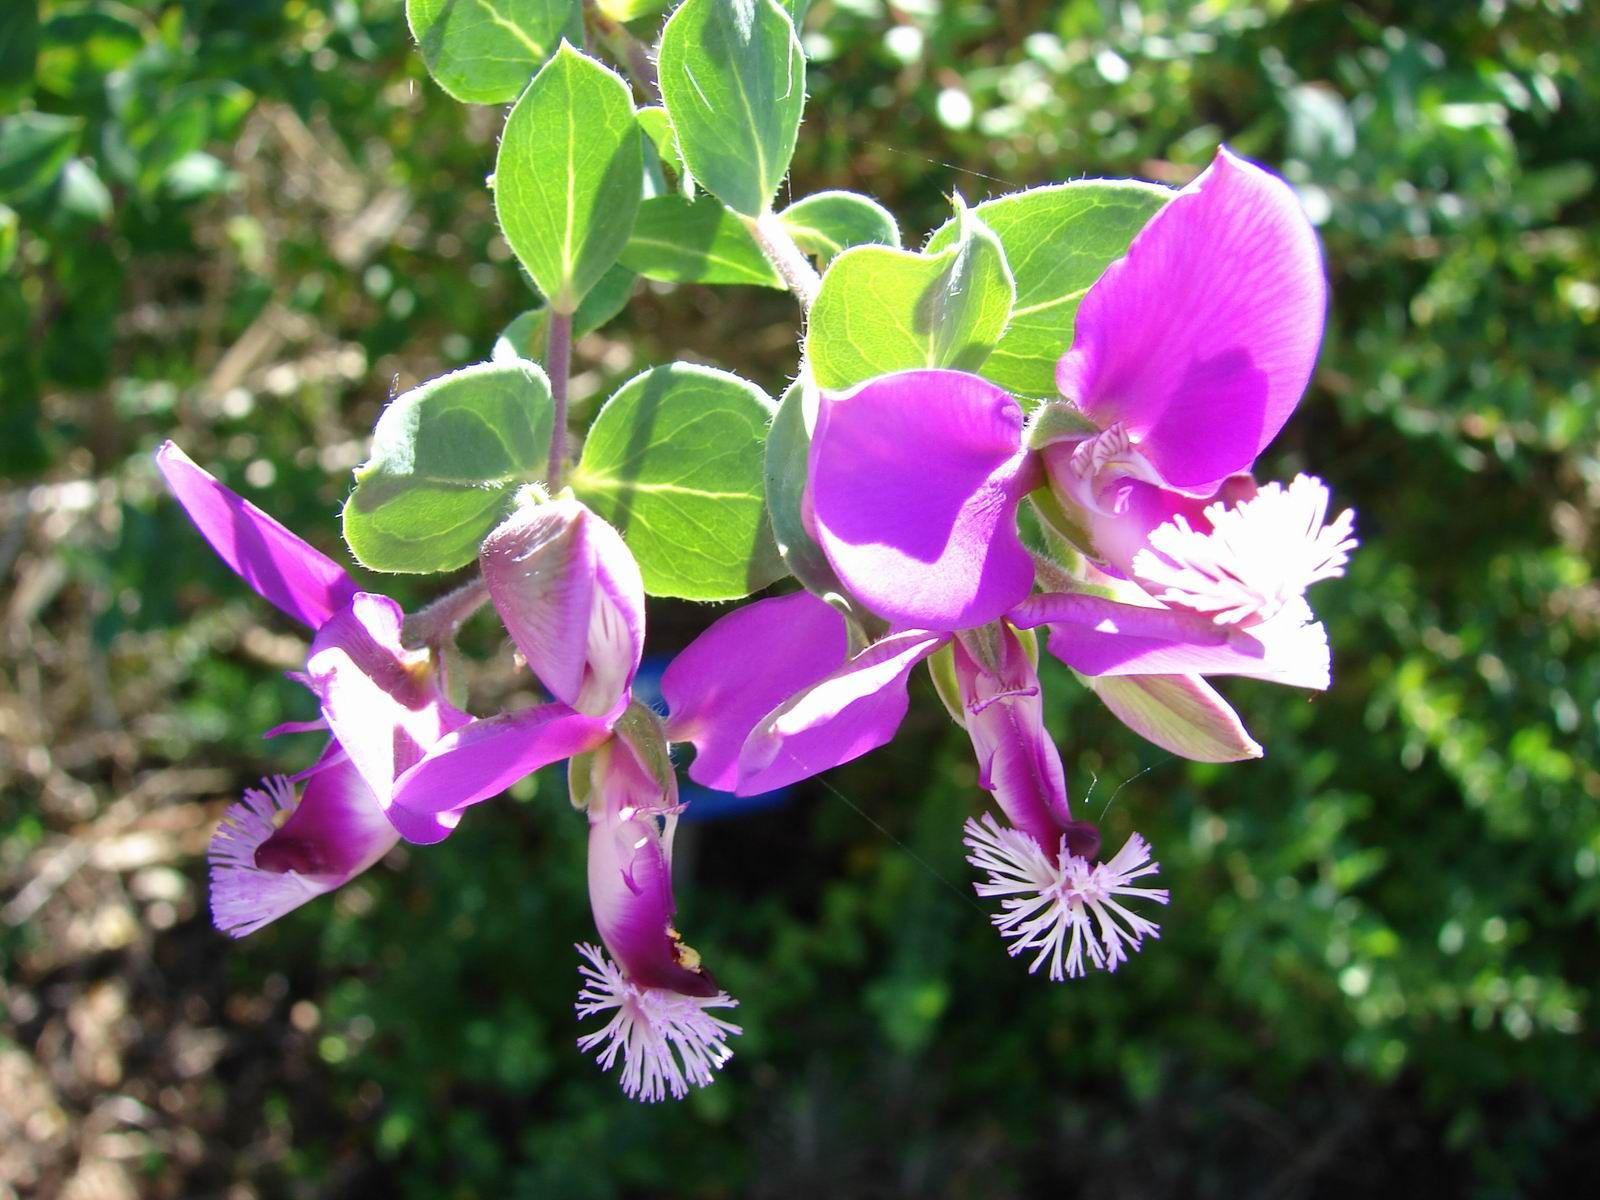 Polygala Dazzler is a hardy shrub that has attractive almost year round purple pea